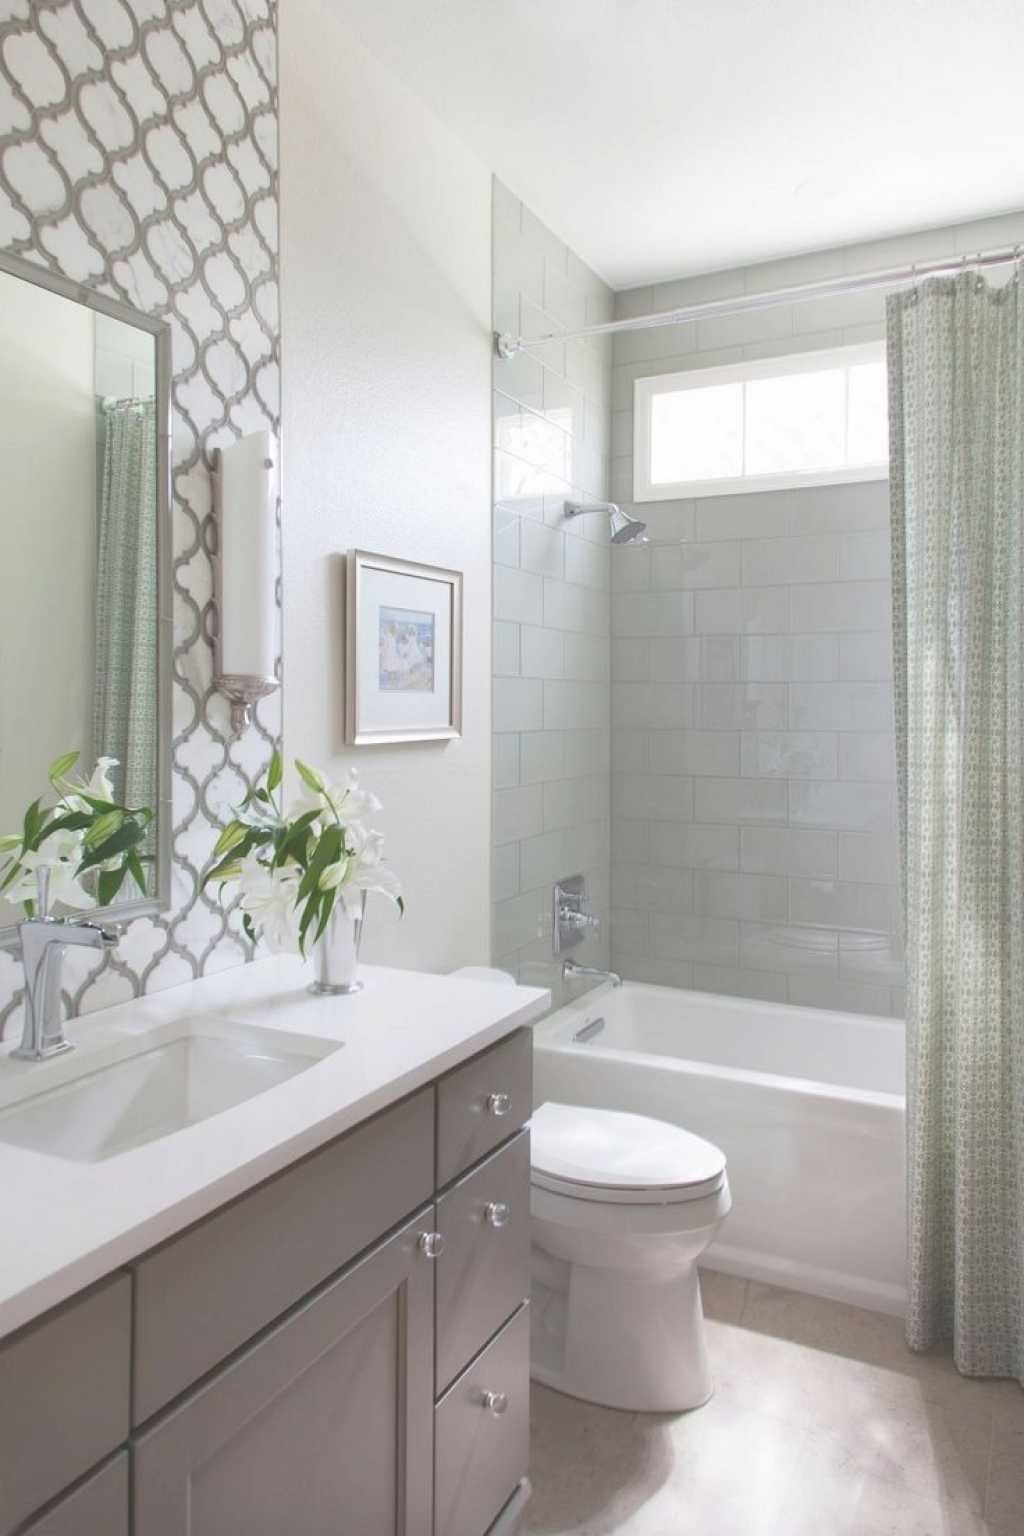 10 ideas about tub shower combo on | bathroom tub ...